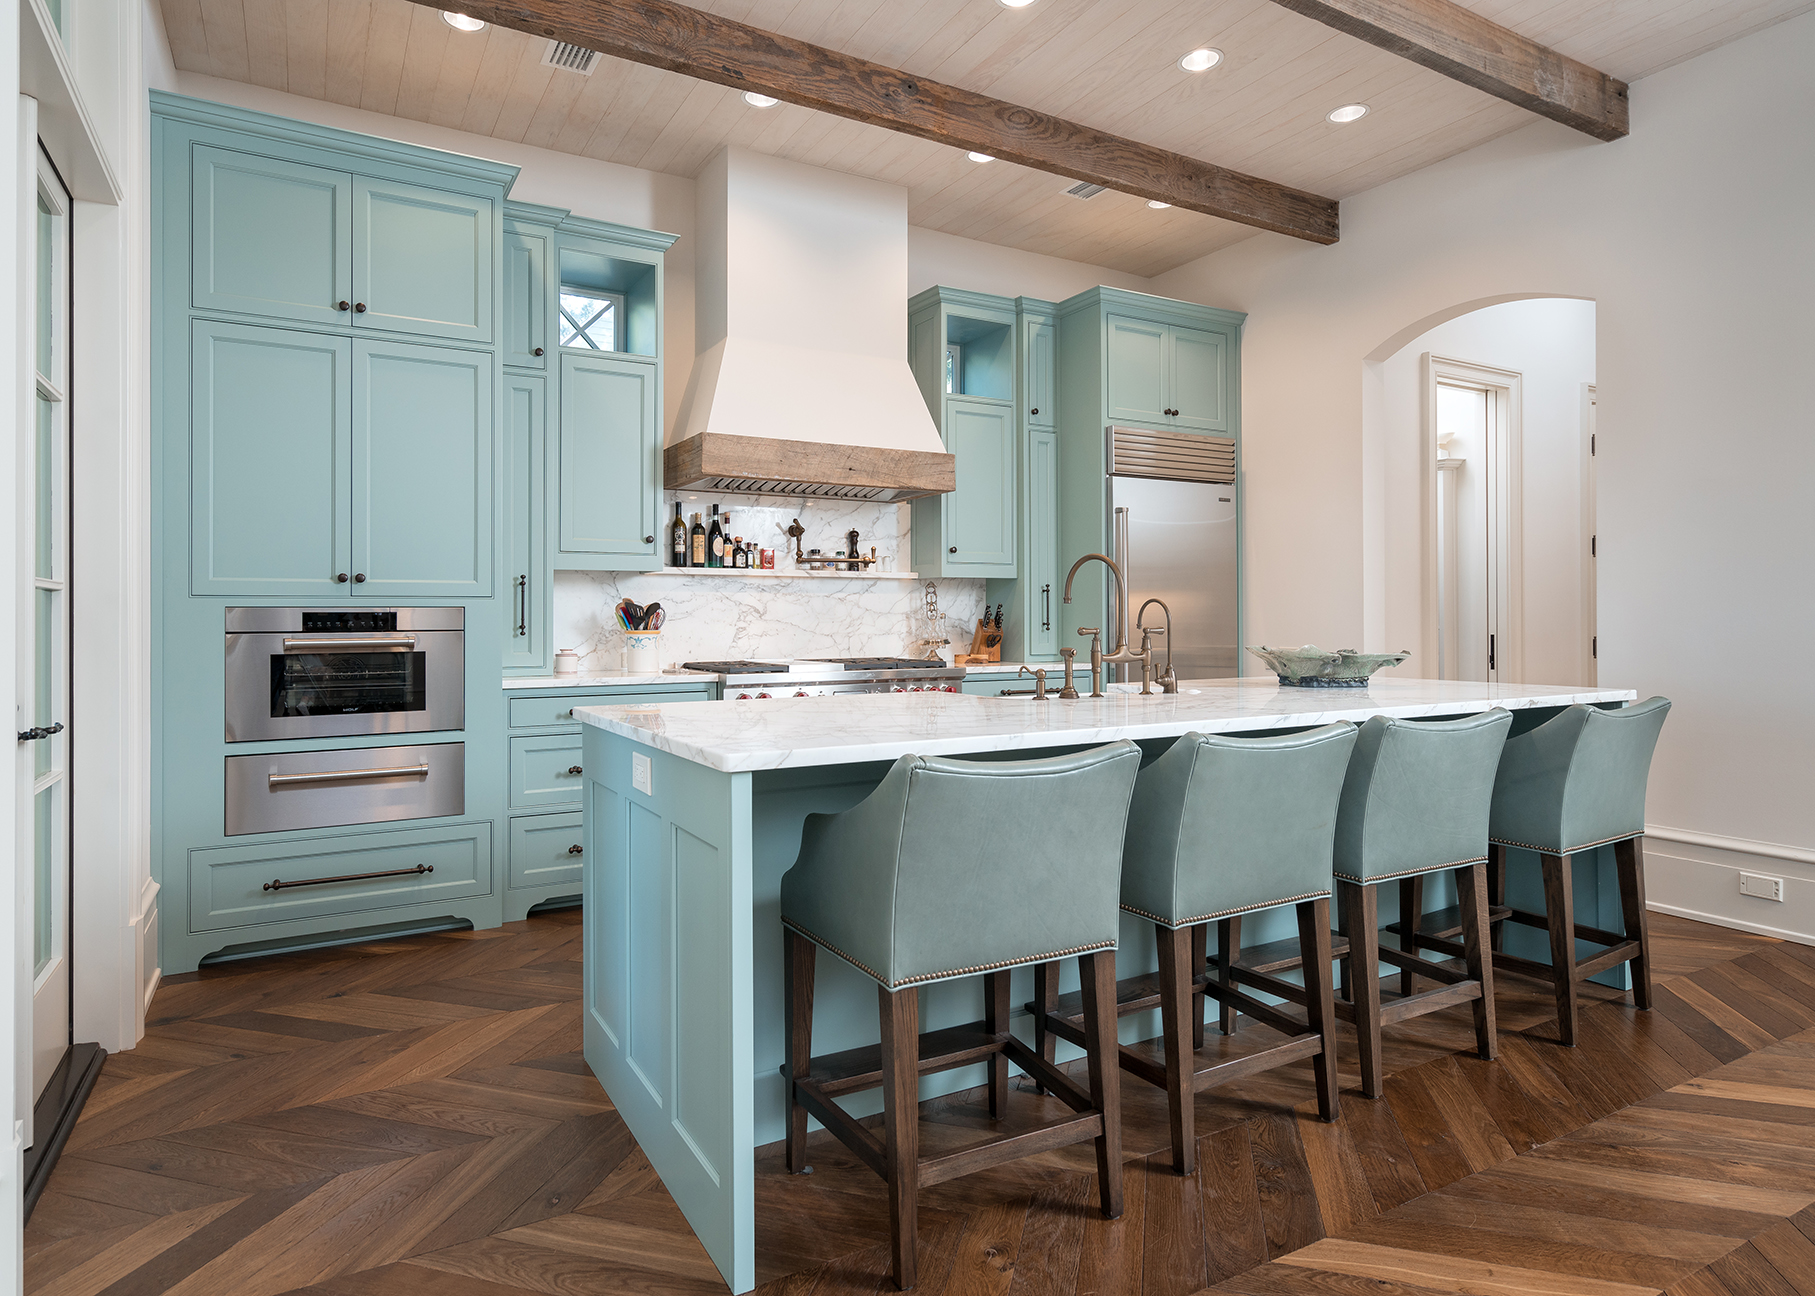 This custom kitchen has inset shaker doors painted a sea blue with specialty window cutouts framing the hood